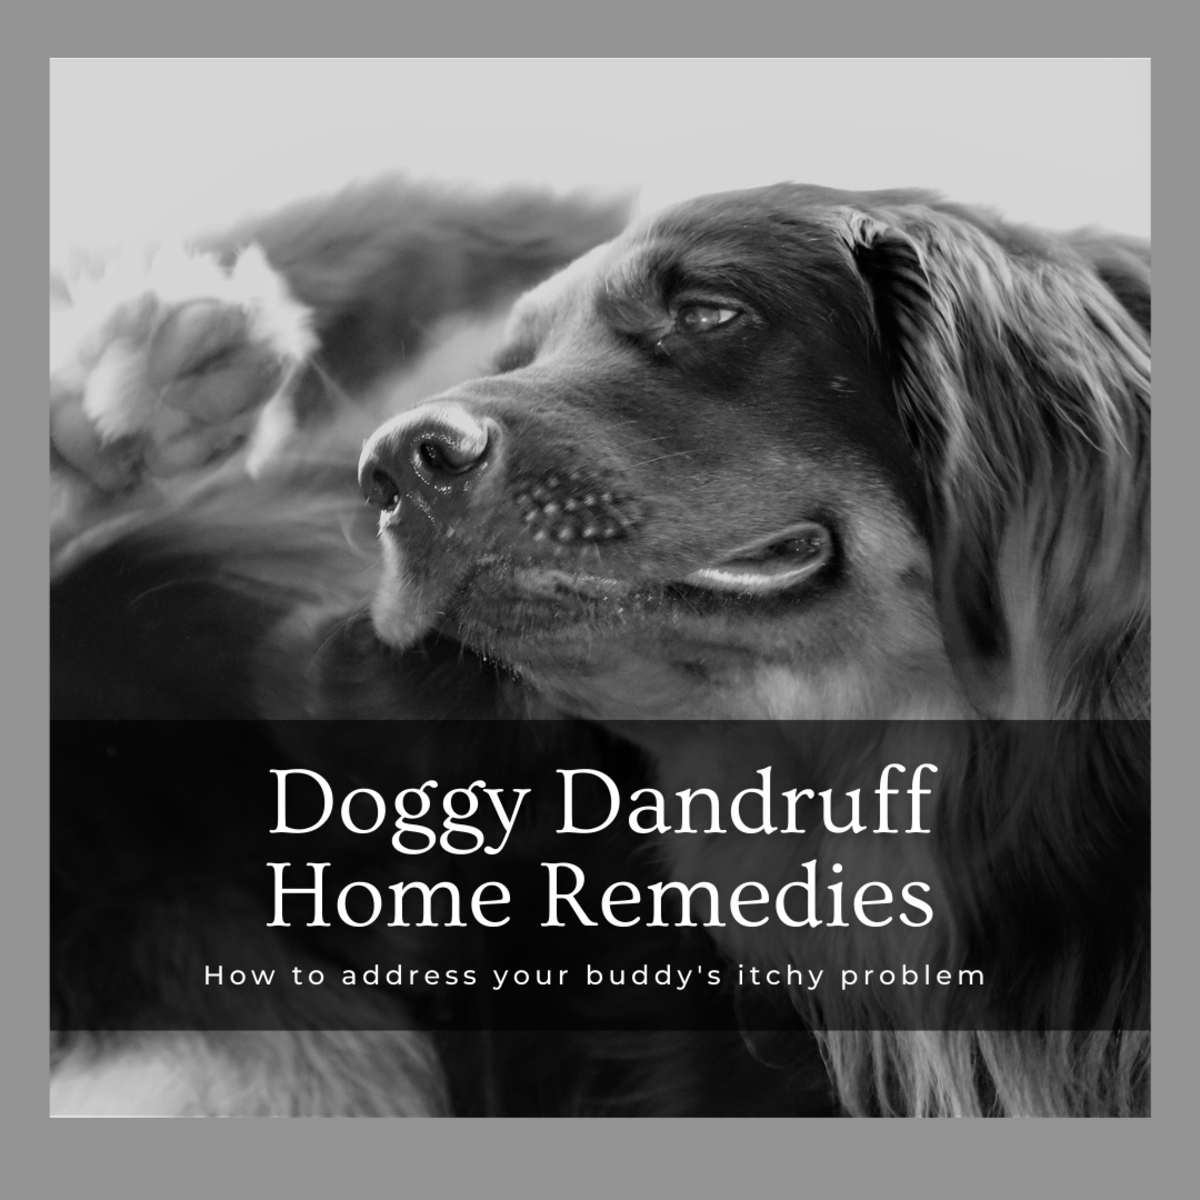 This article will provide a number of ways for you to help treat your dog's dandruff through various home remedies.